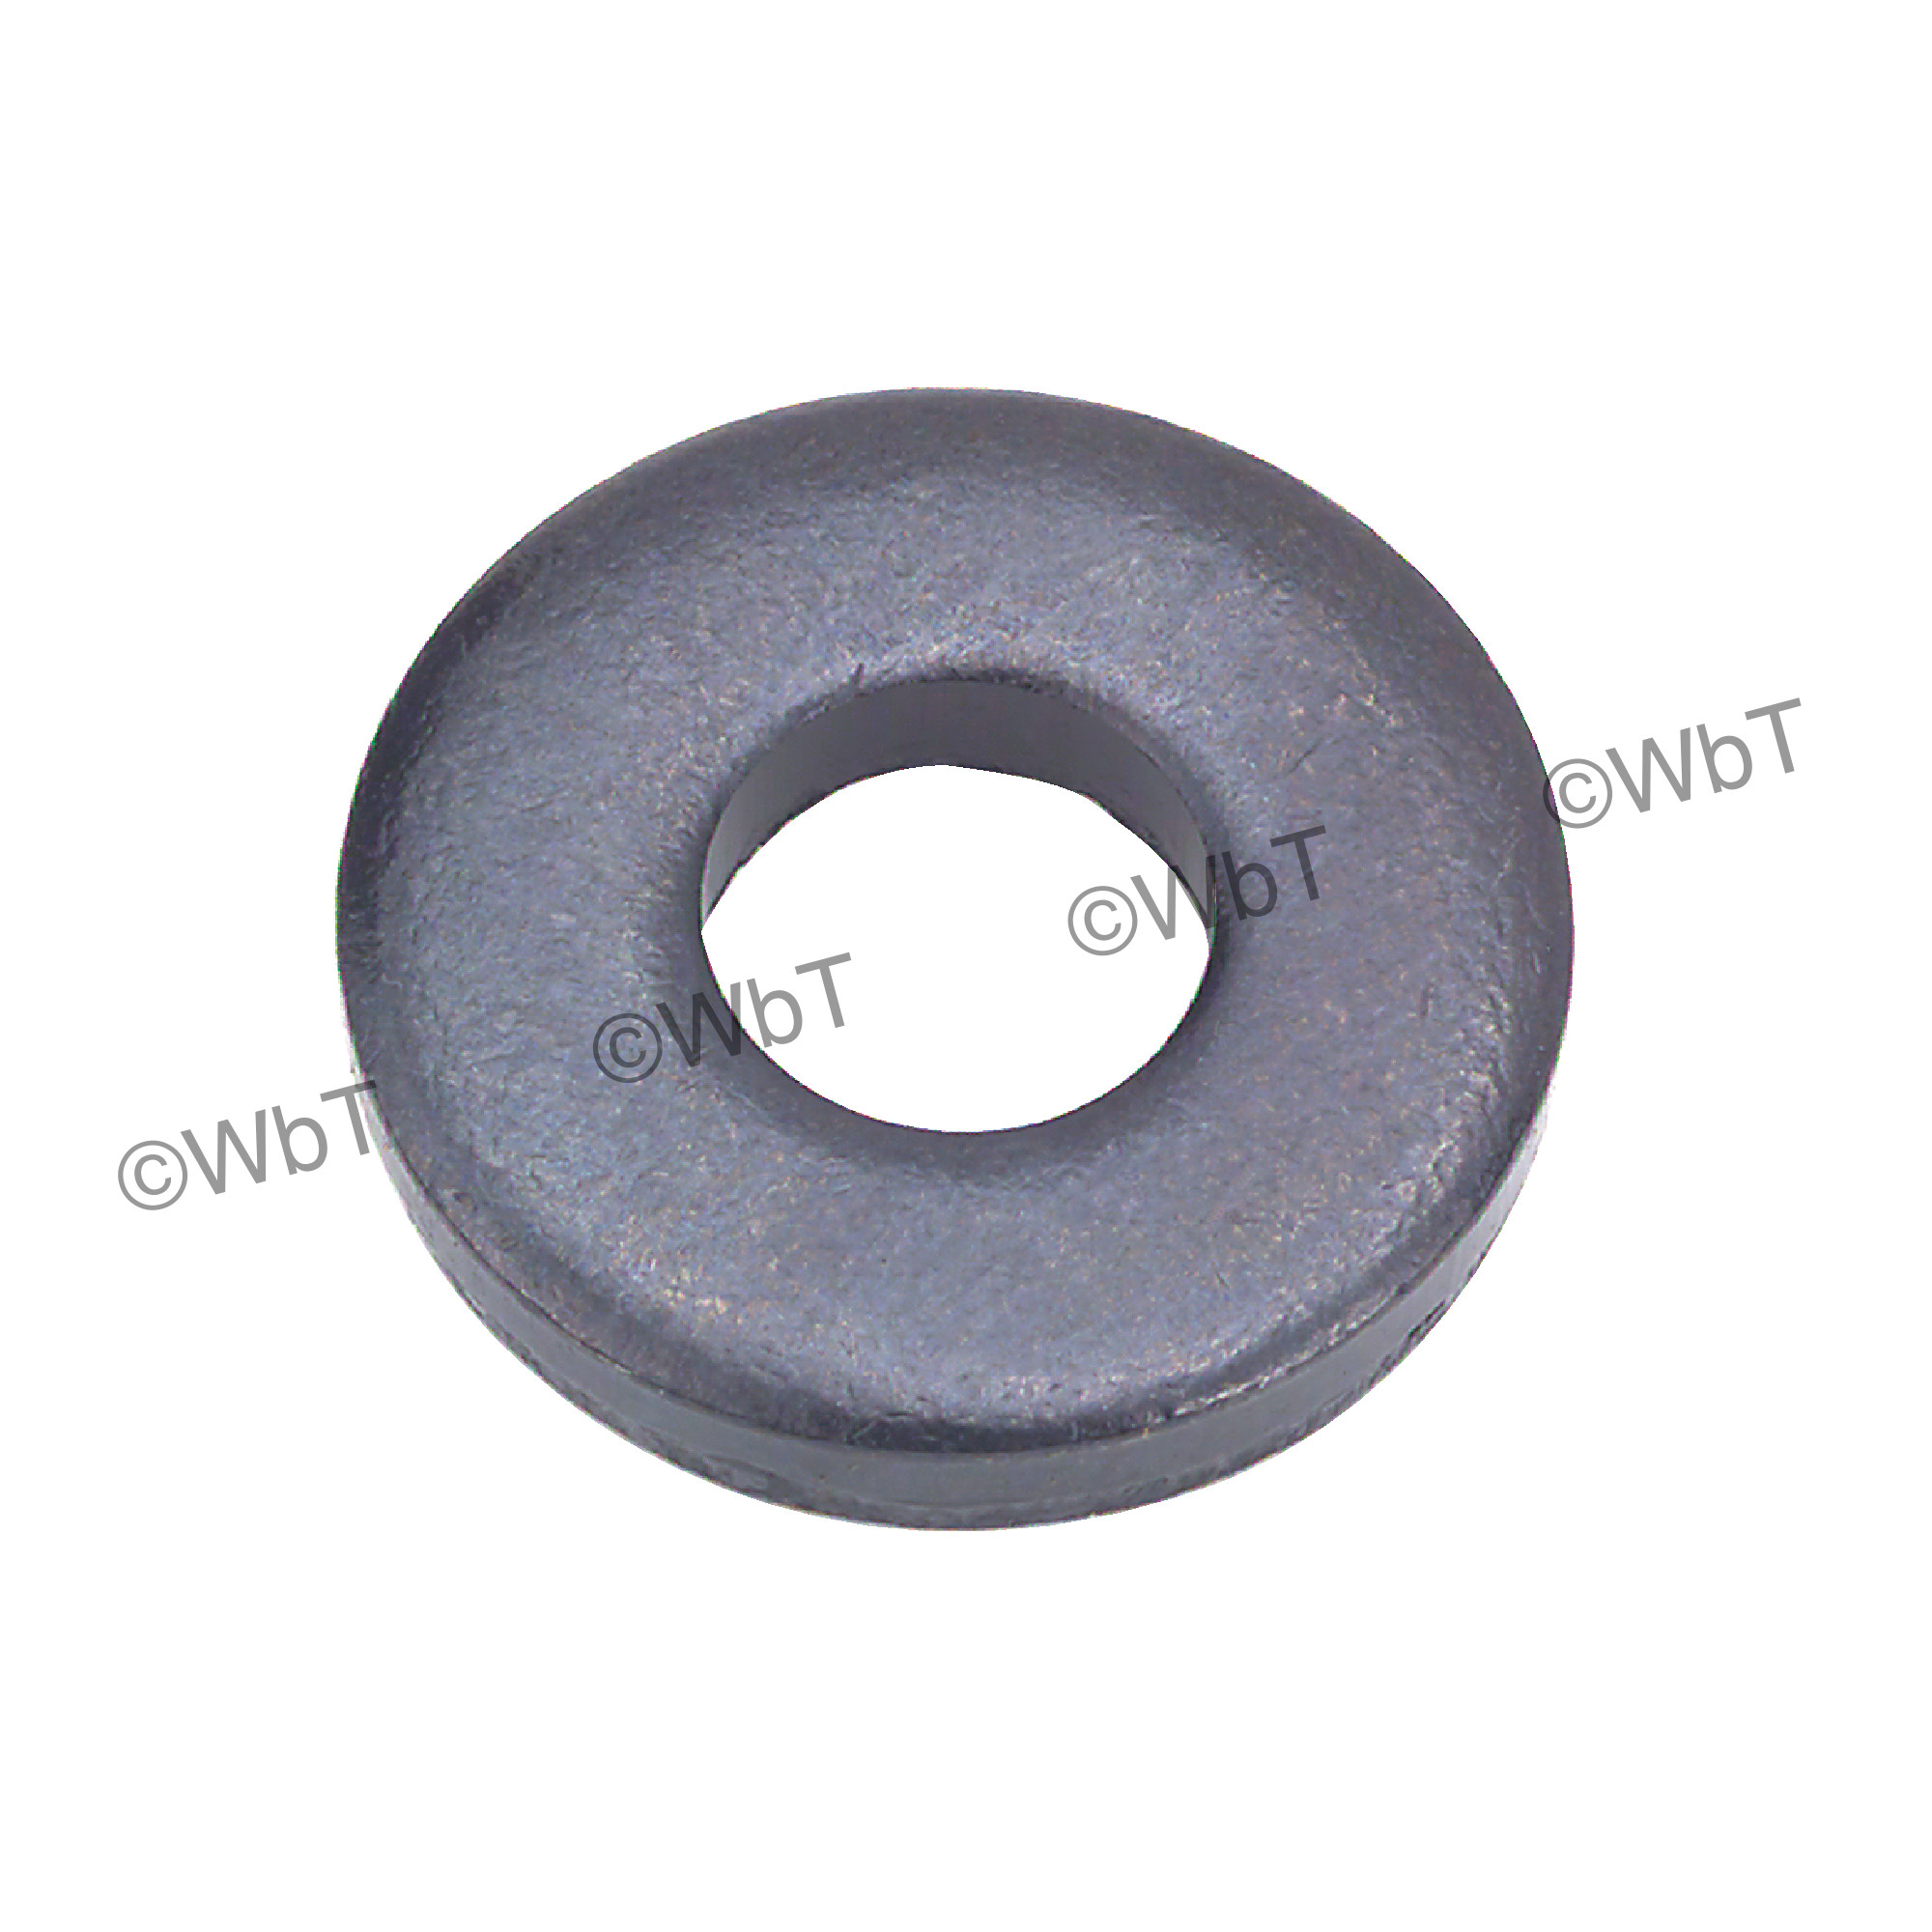 Flat Component Washer